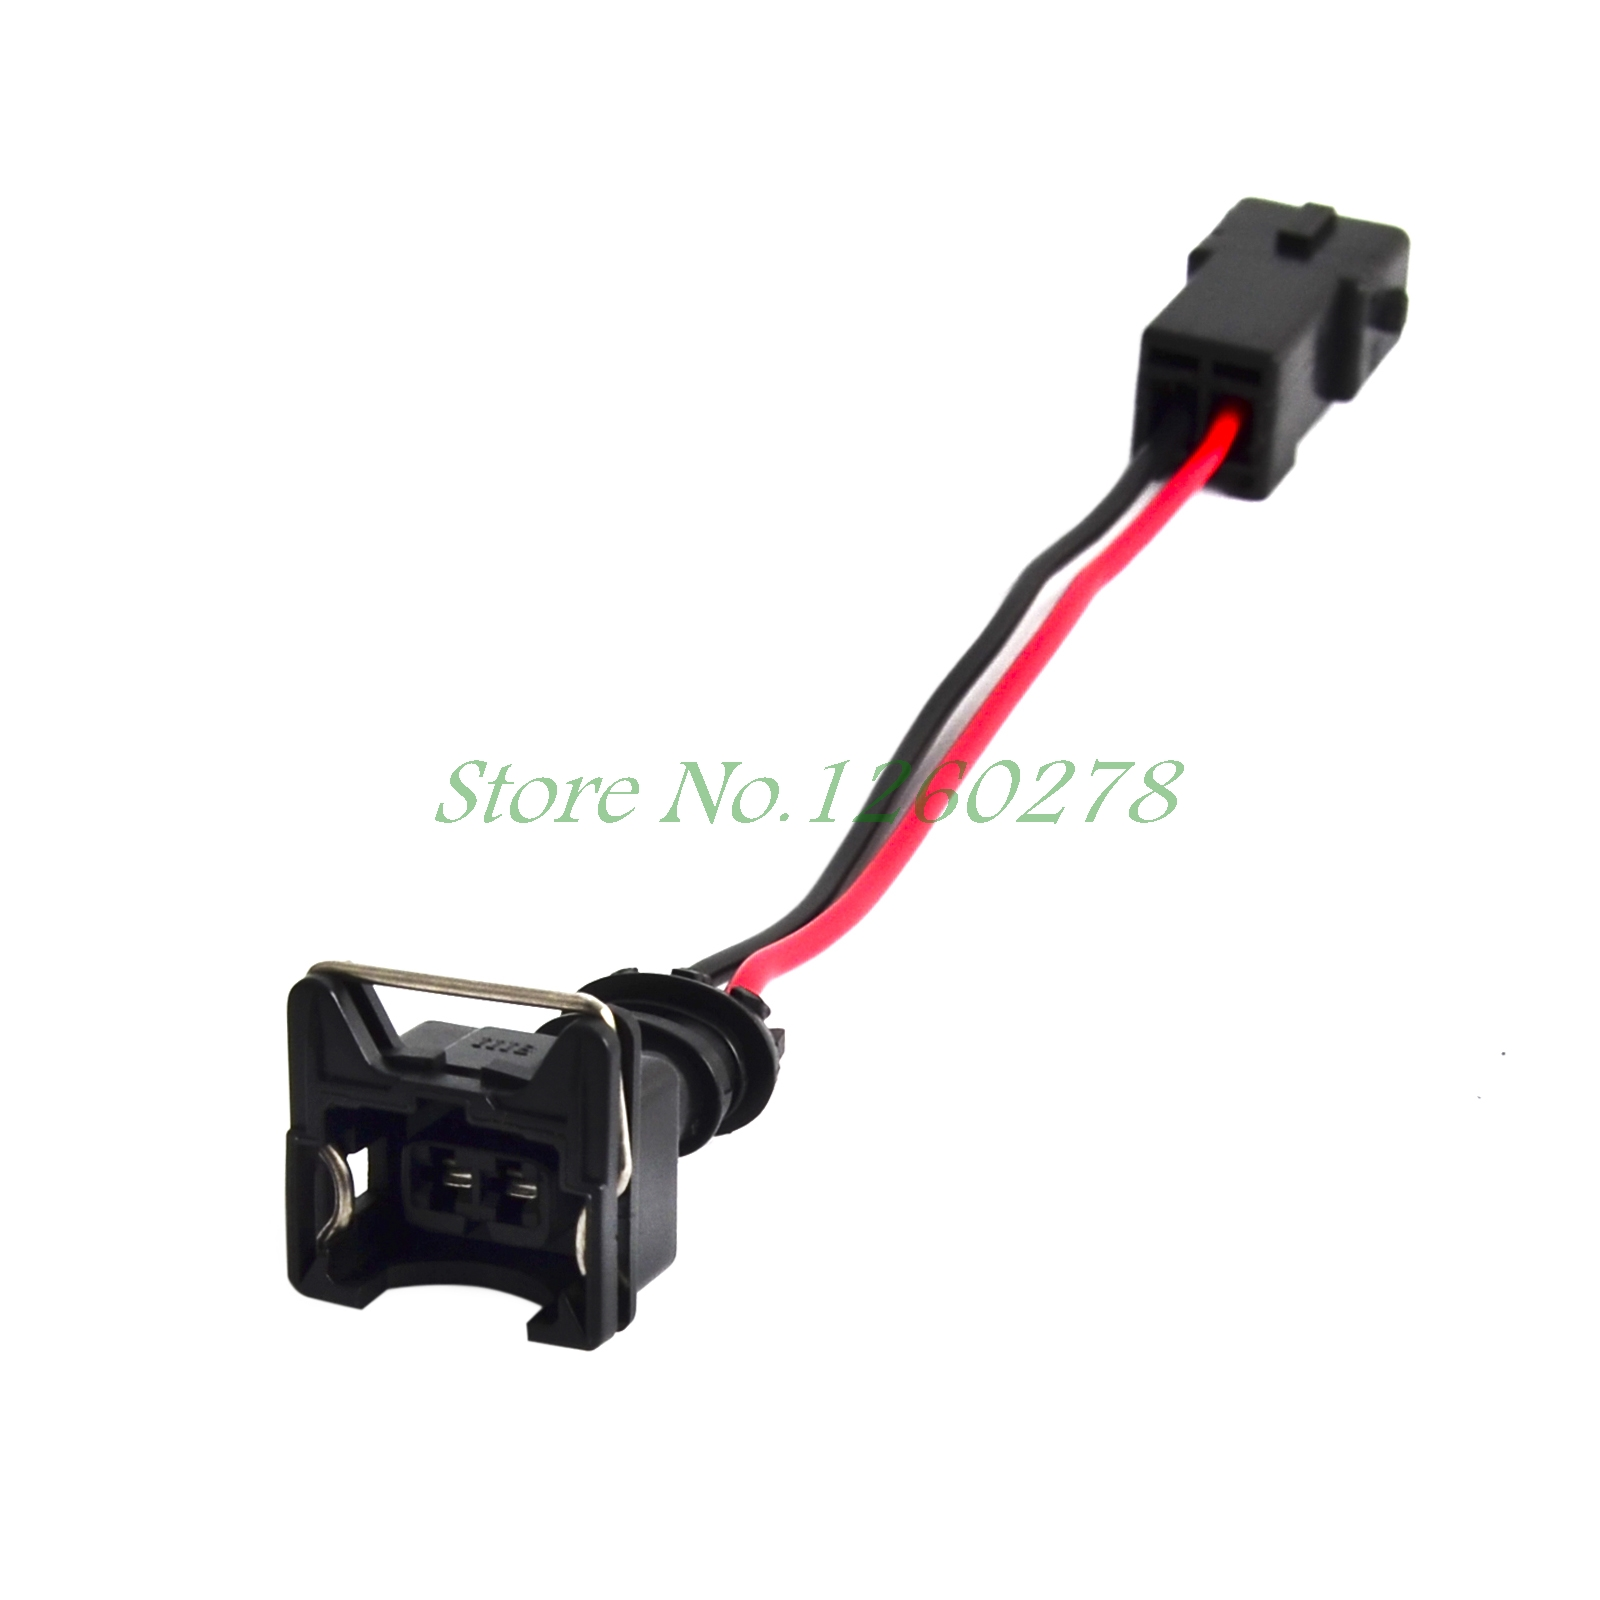 New Fuel Injector Conversion Harness For Honda Accord 2002 2013 Wiring Civic S2000 Integra Rsx Tsx In Inject Controls Parts From Automobiles Motorcycles